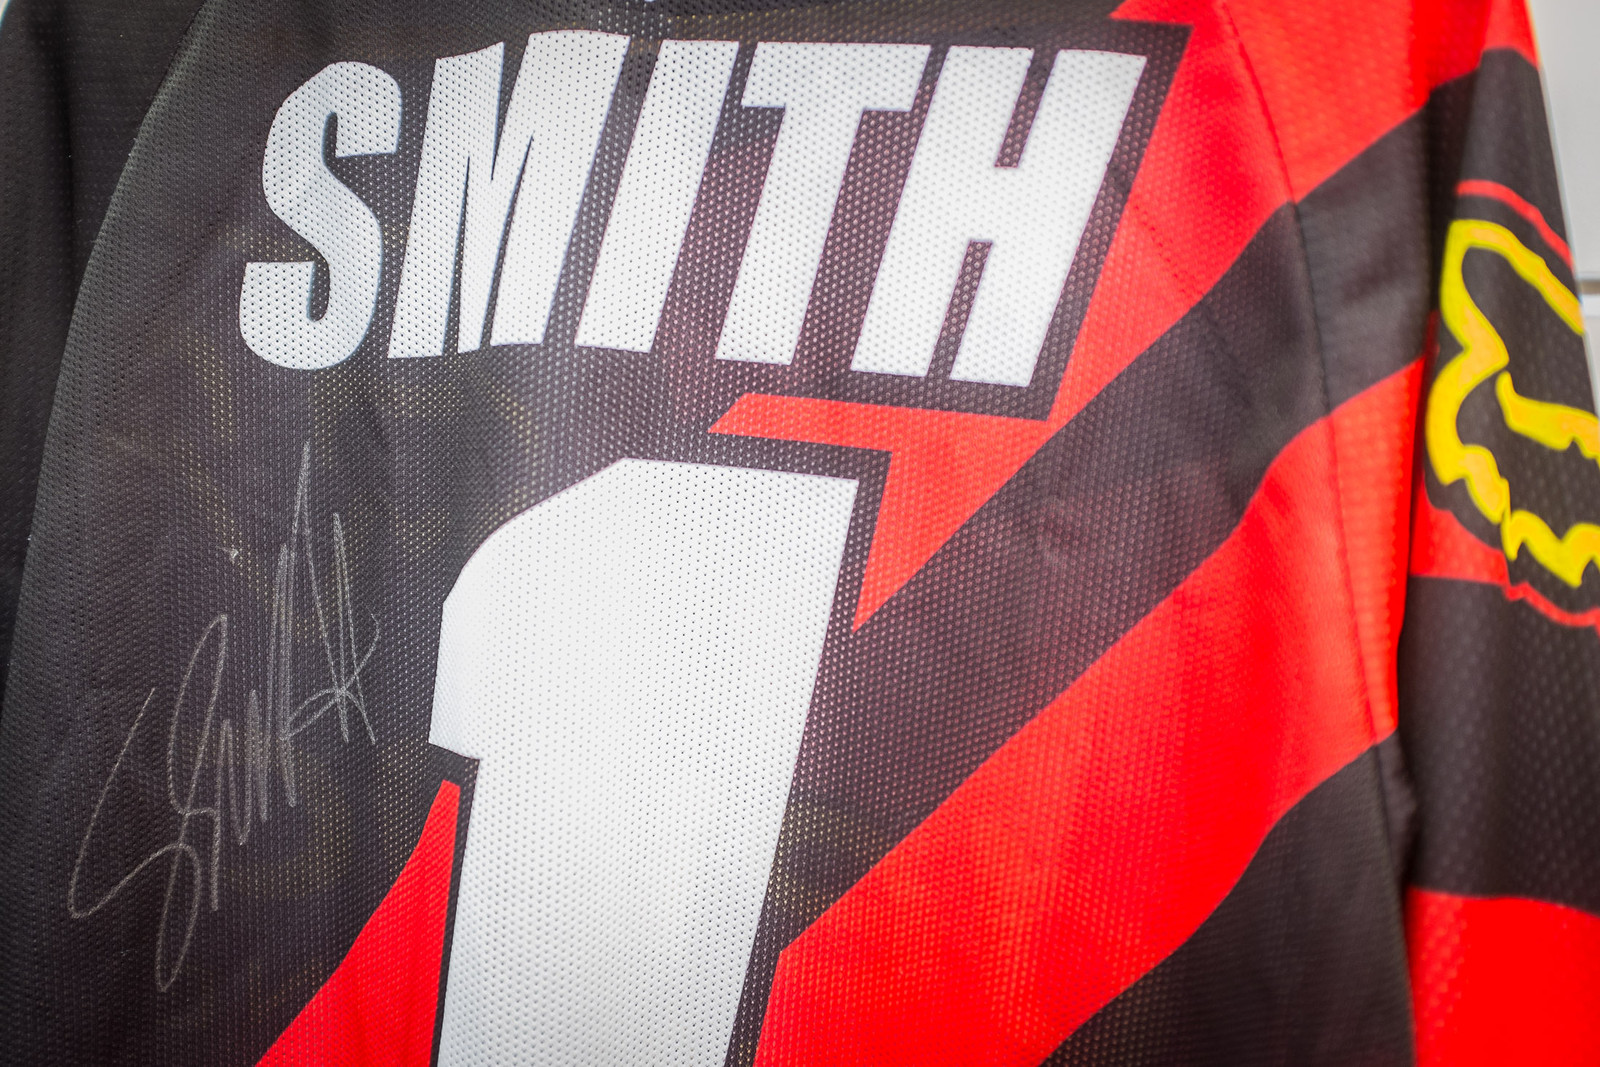 Stevie Smith Autographed Jersey - EUROBIKE - 2017 Mountain Bike Apparel and Protective Gear - Mountain Biking Pictures - Vital MTB